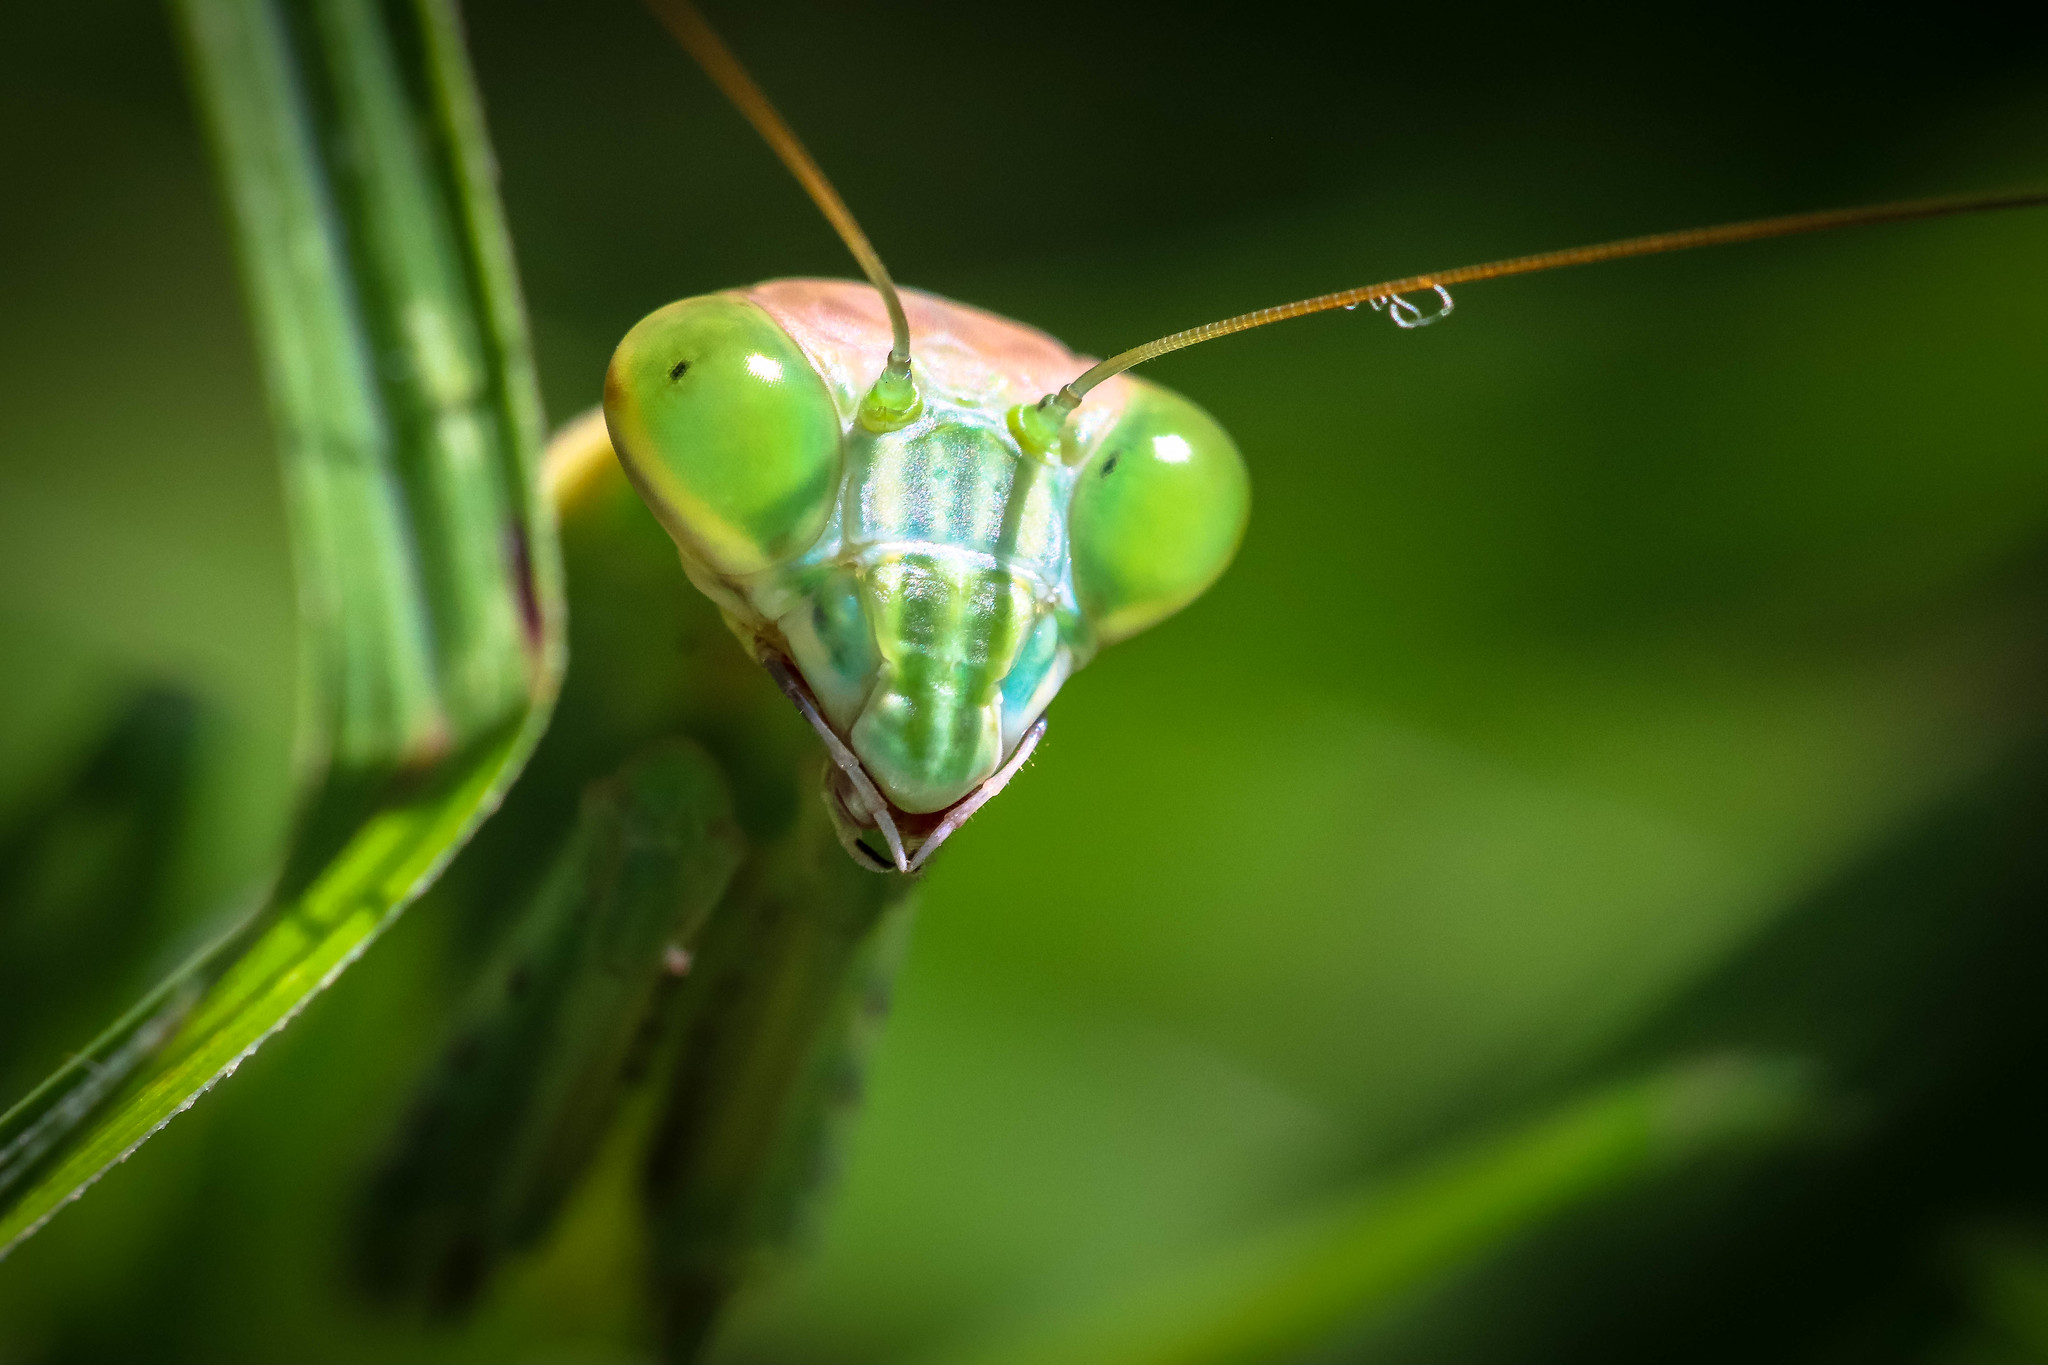 Macro Monday Brings The Magnificent Mantises